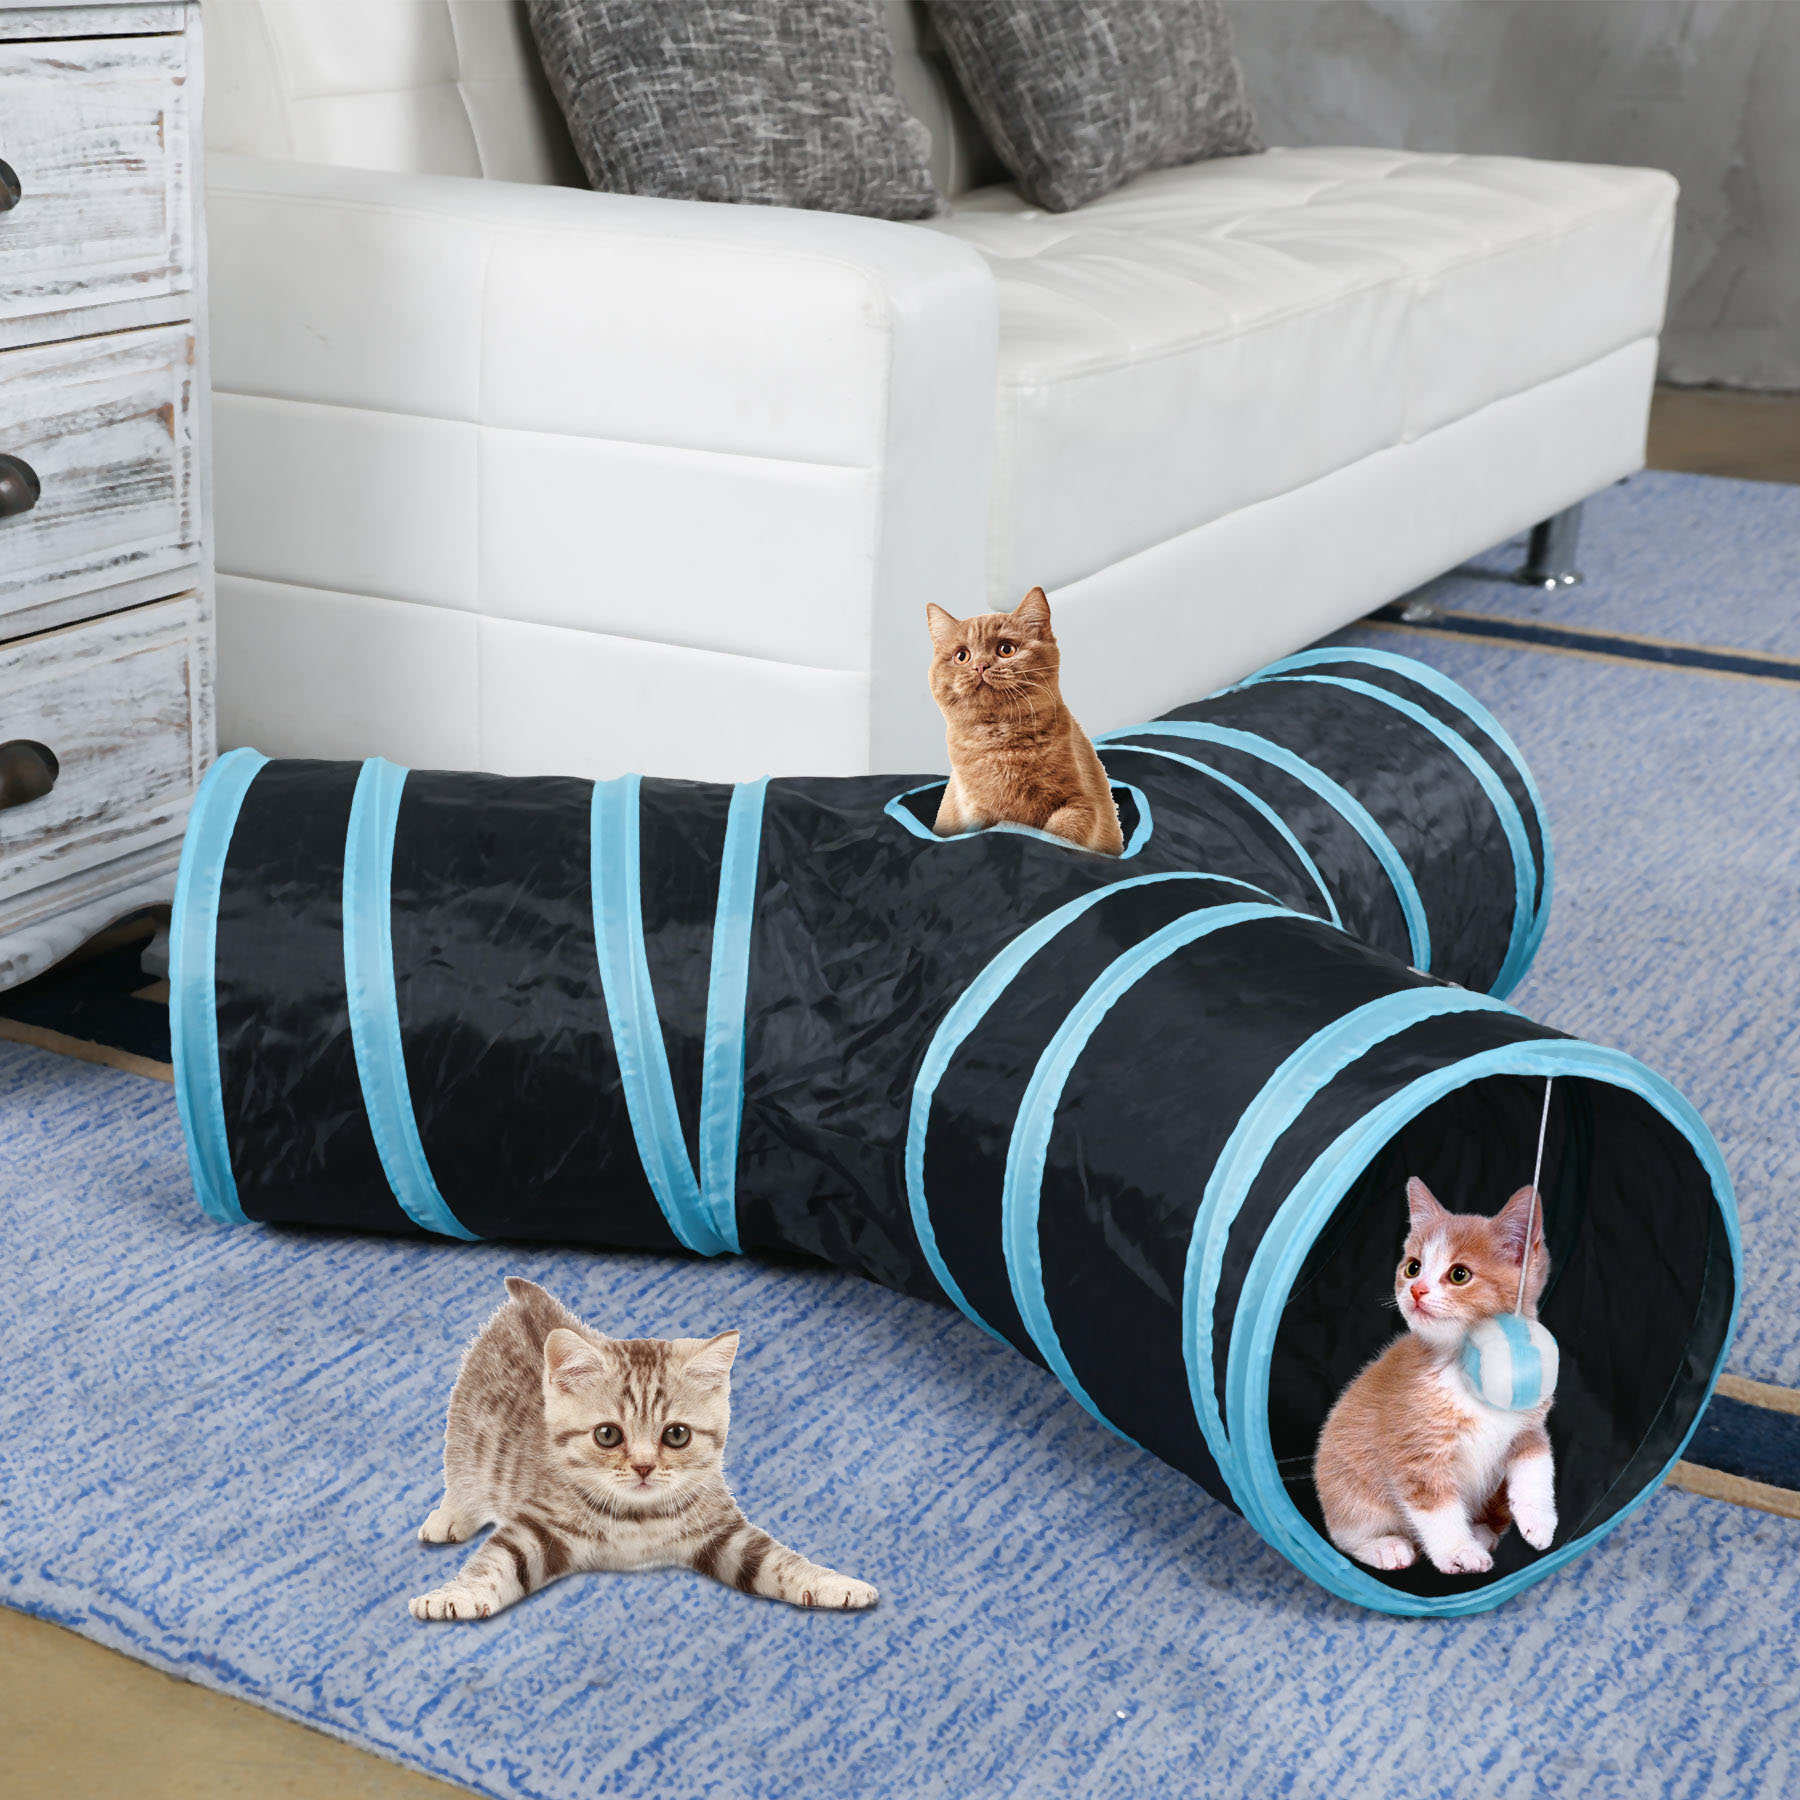 Dropshipping Pet Cat Tunnel Toys for Cat Kitten 3 Holes Collapsible Crinkle Cat Playing Tunnel Toy Blue Pink Cat Toys Brand